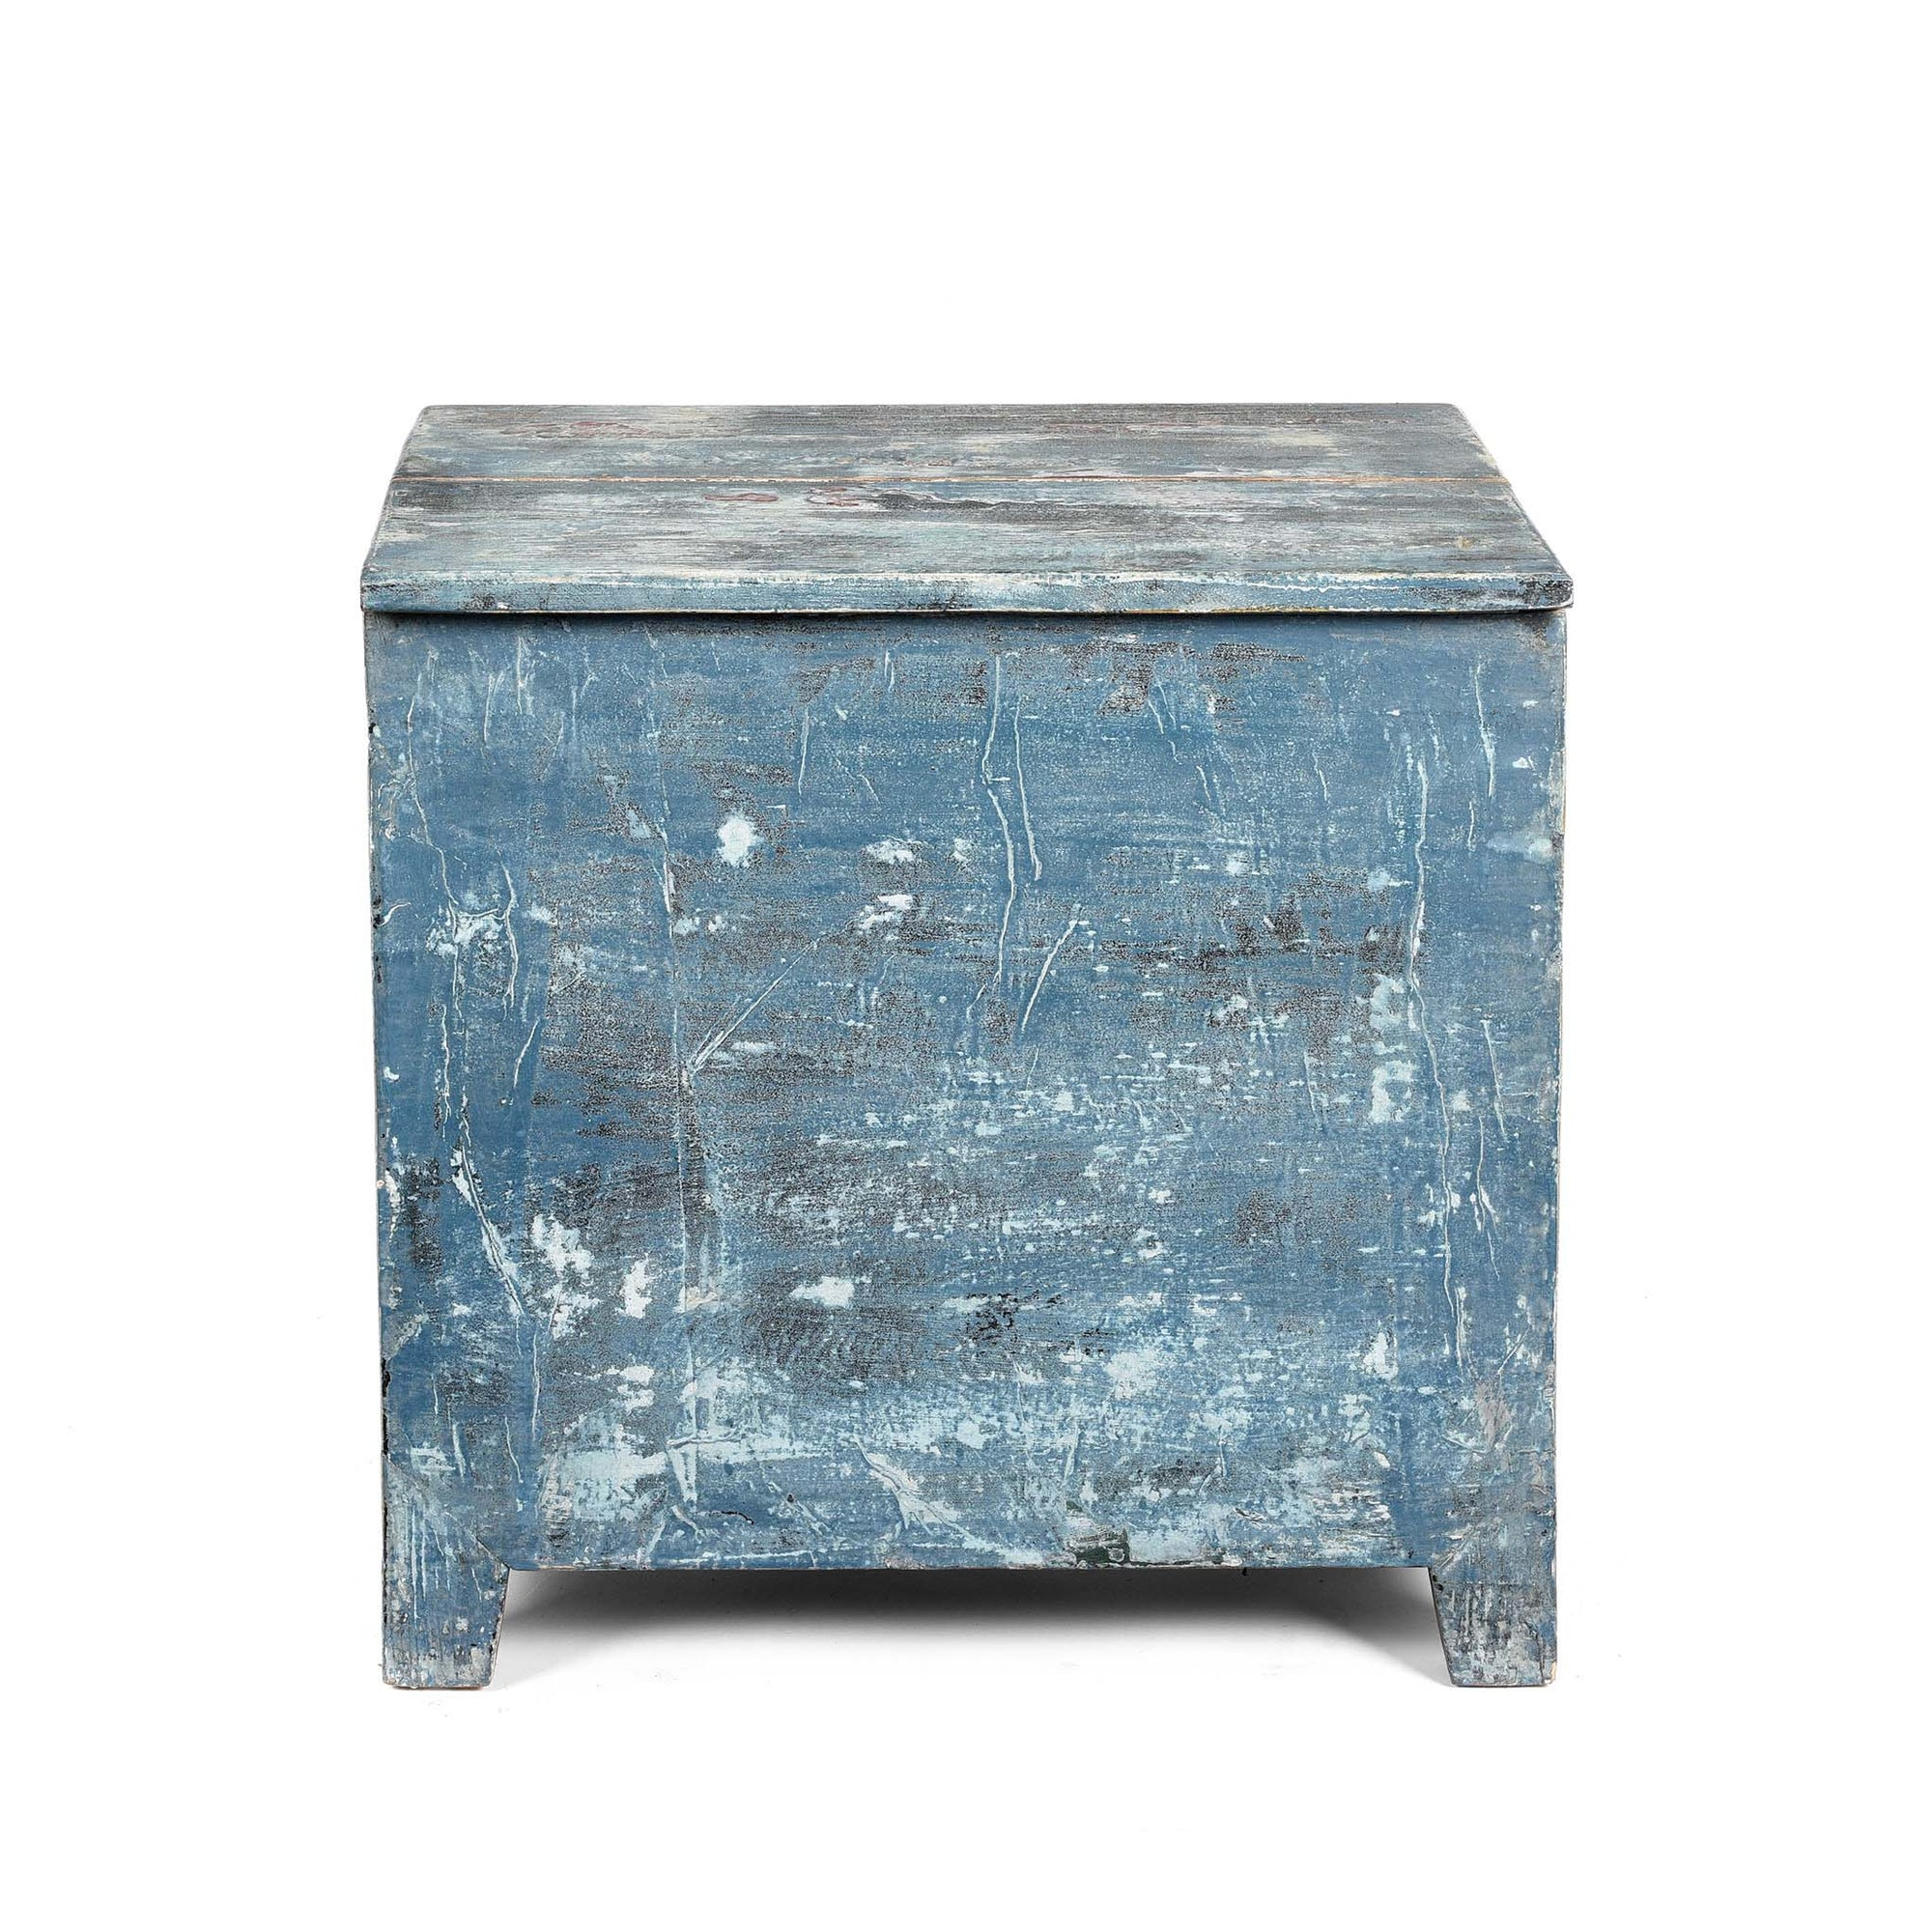 Painted Chest From Mongolia - Pine - Ca 80 Yrs Old - 55 x 39 x 57(w x d x h cms) - C0188V2